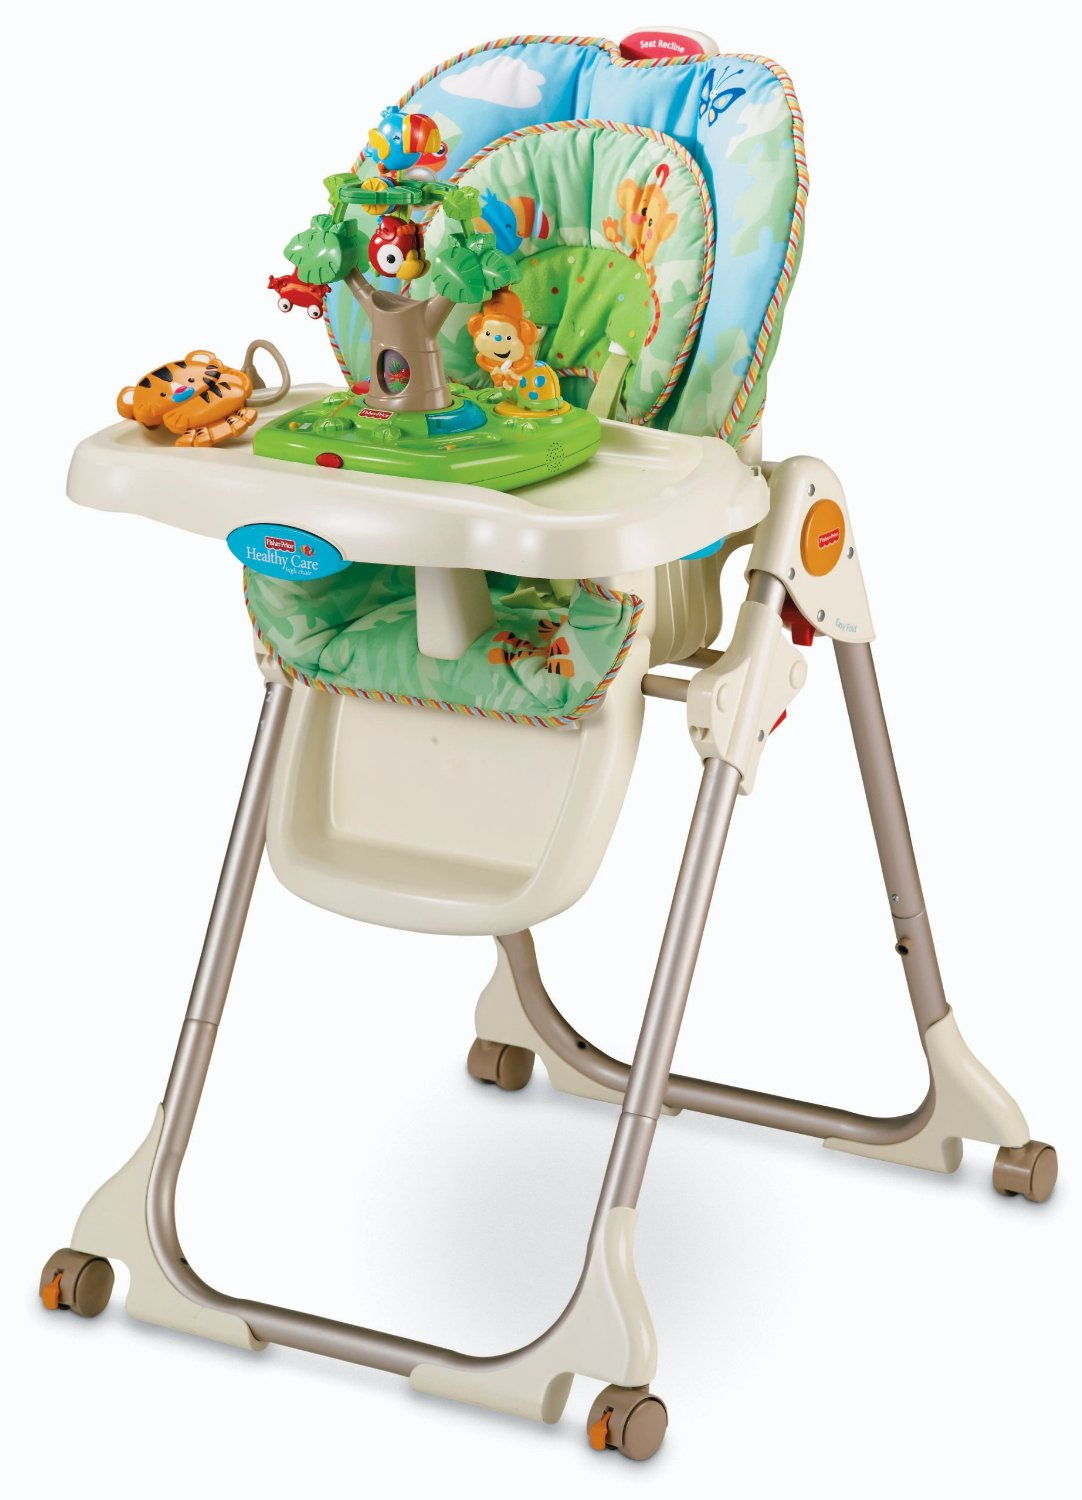 Toddler Approved!: The Best High Chairs and Booster Seats for Kids